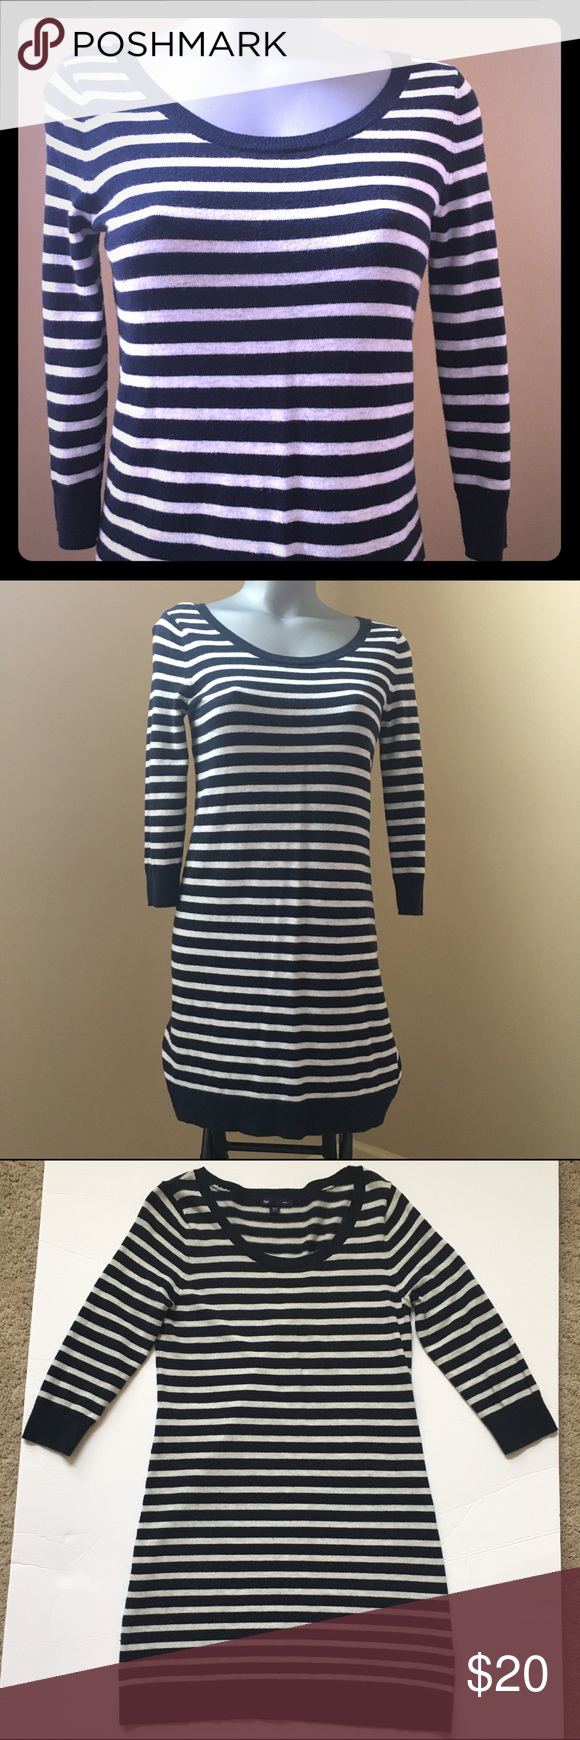 Gap Striped Navy Blue Sweater Dress In excellent condition and ...